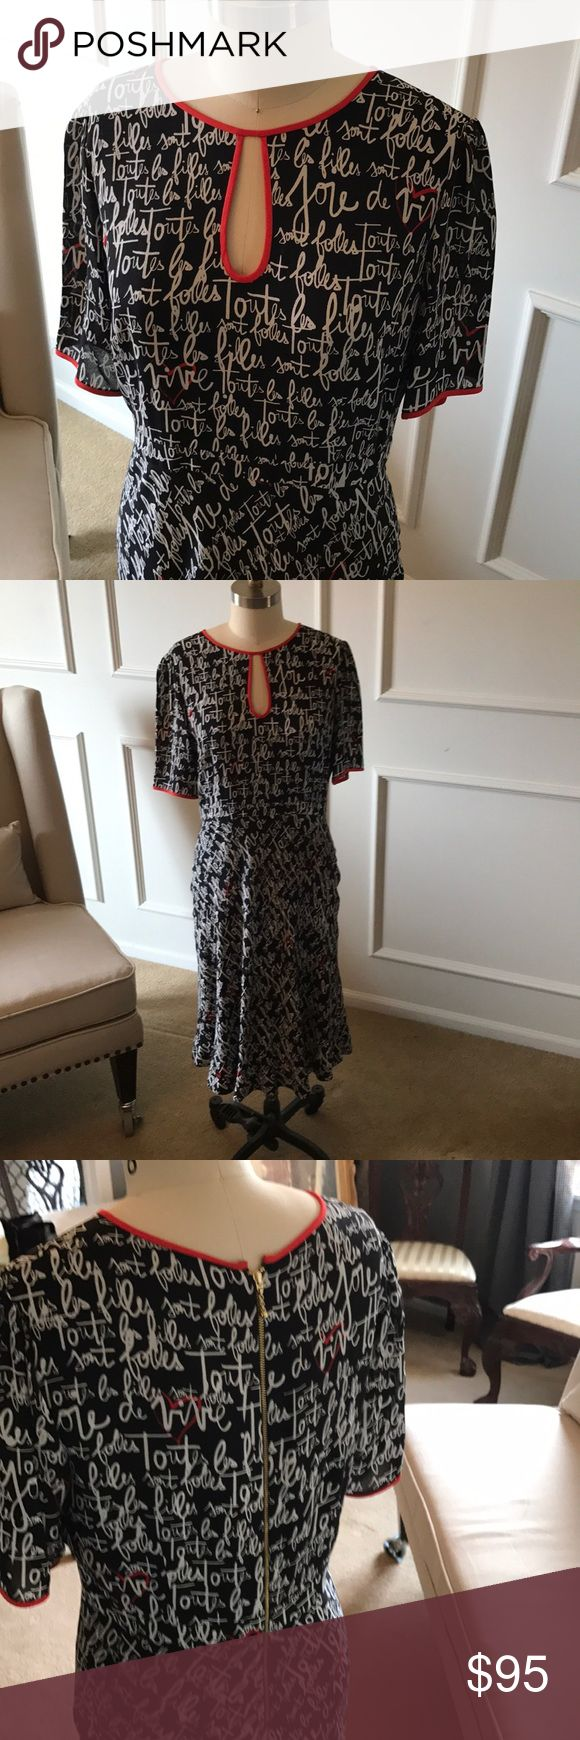 Kate Spade Tulip Skirt Dress Black and White Print, Short Sleeve, Length Falls below the knee, Key Hole Front and Hold Zipper Down the Back, Crepe Material Super Sweet! Size 12 kate spade Dresses